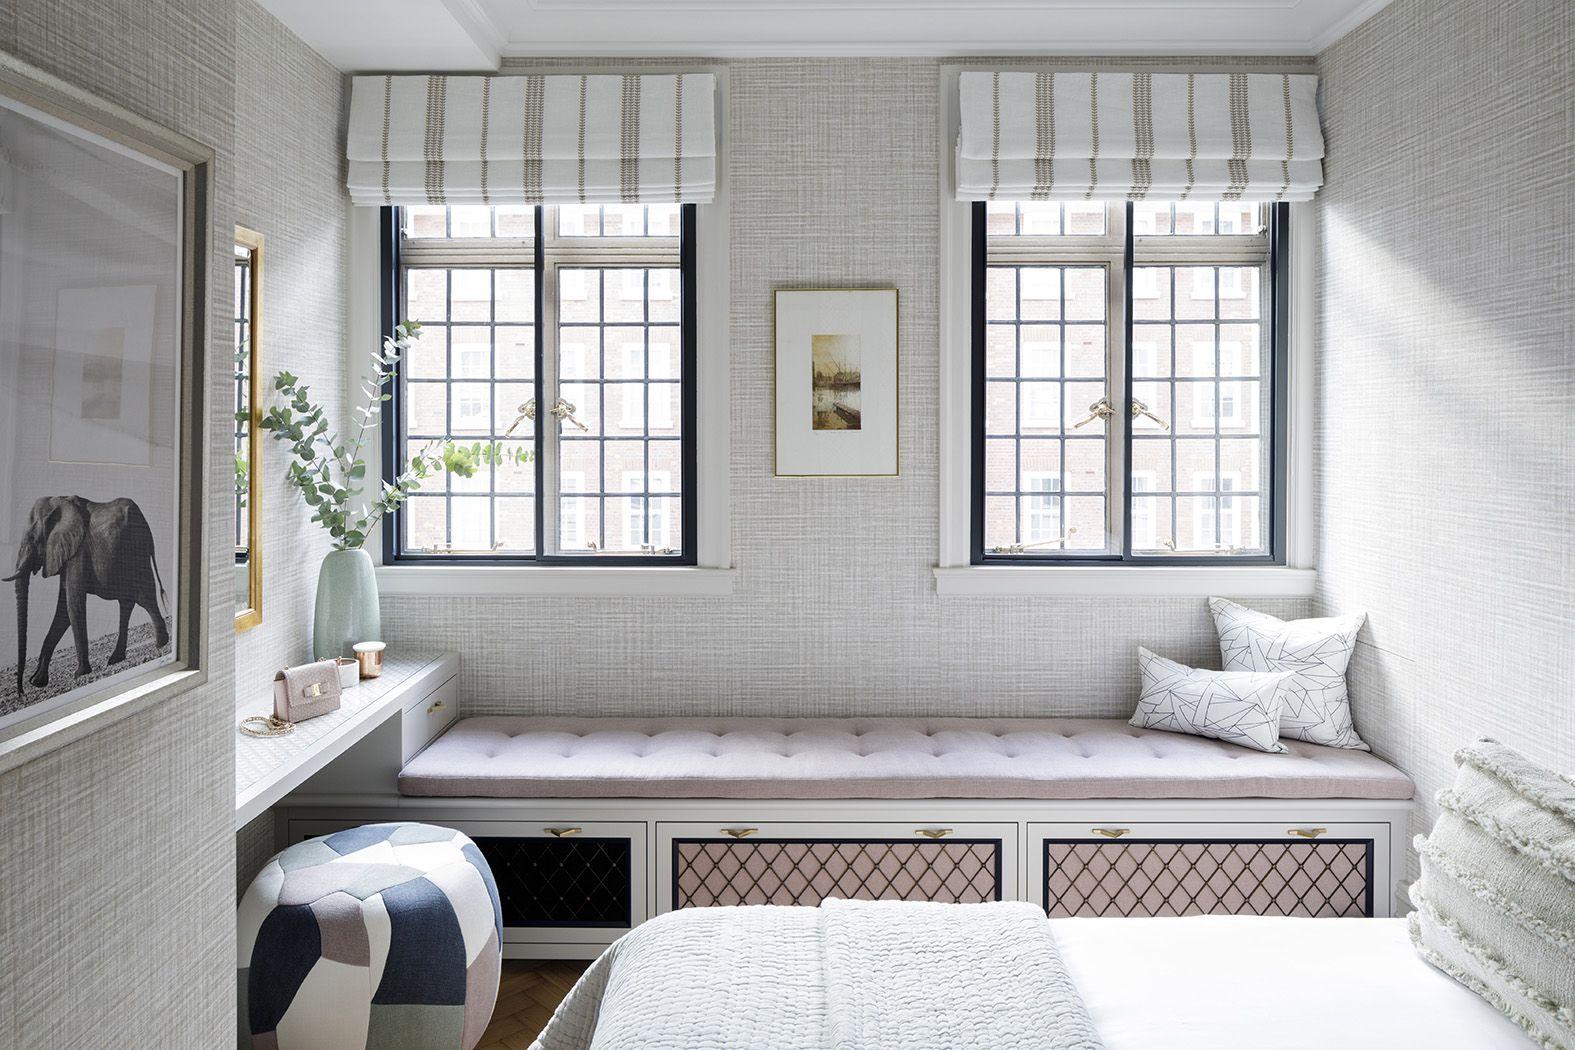 baker marylebone gunter amp co interiors bedroom on 62 Holistic Approach To Living Room Furniture id=74509